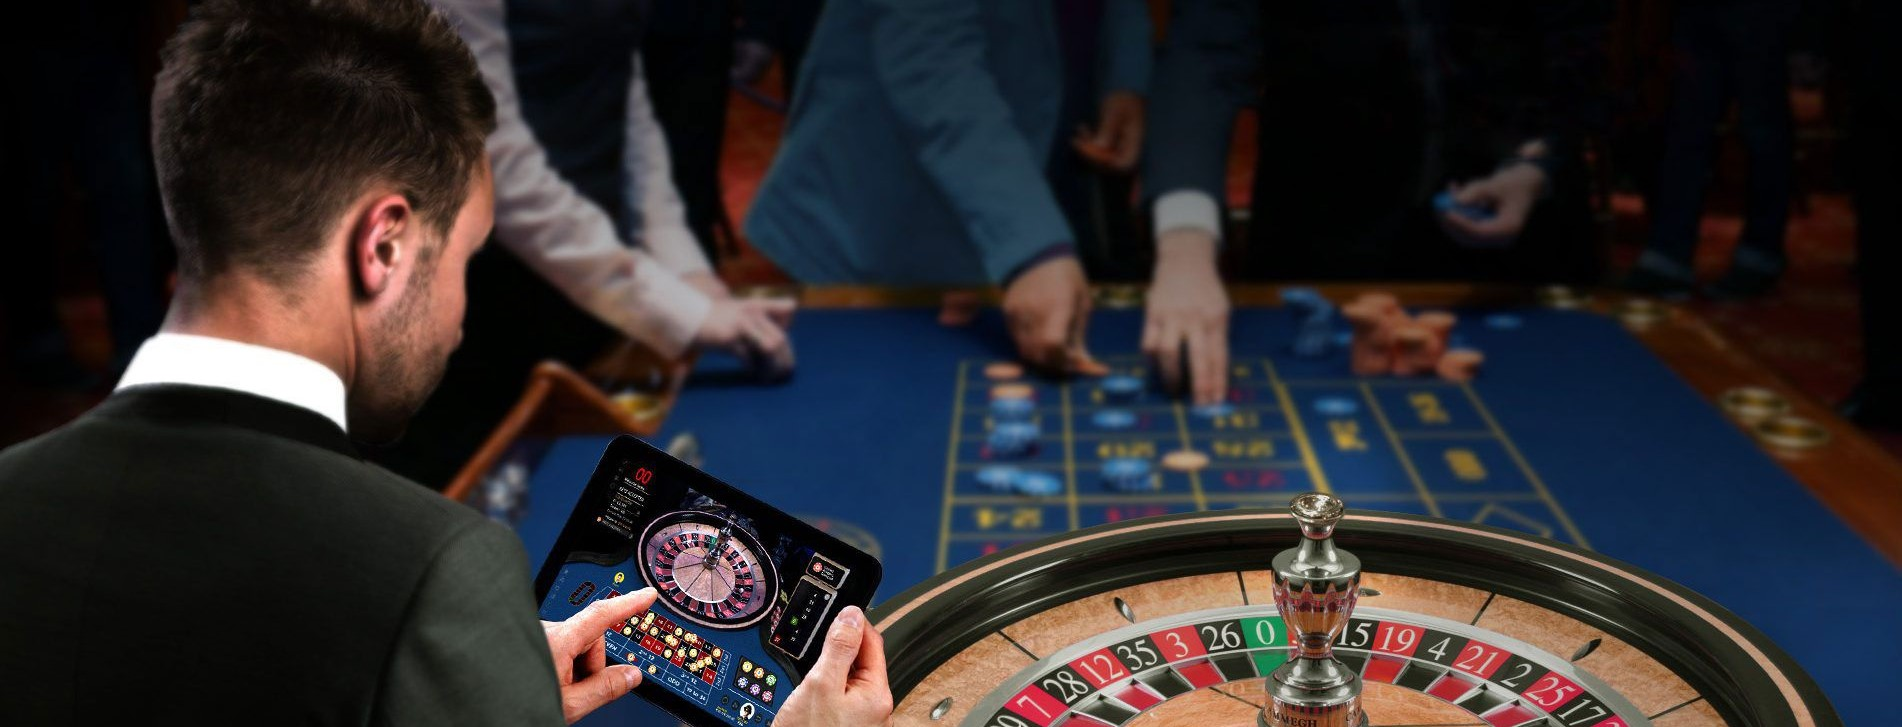 roulette being played